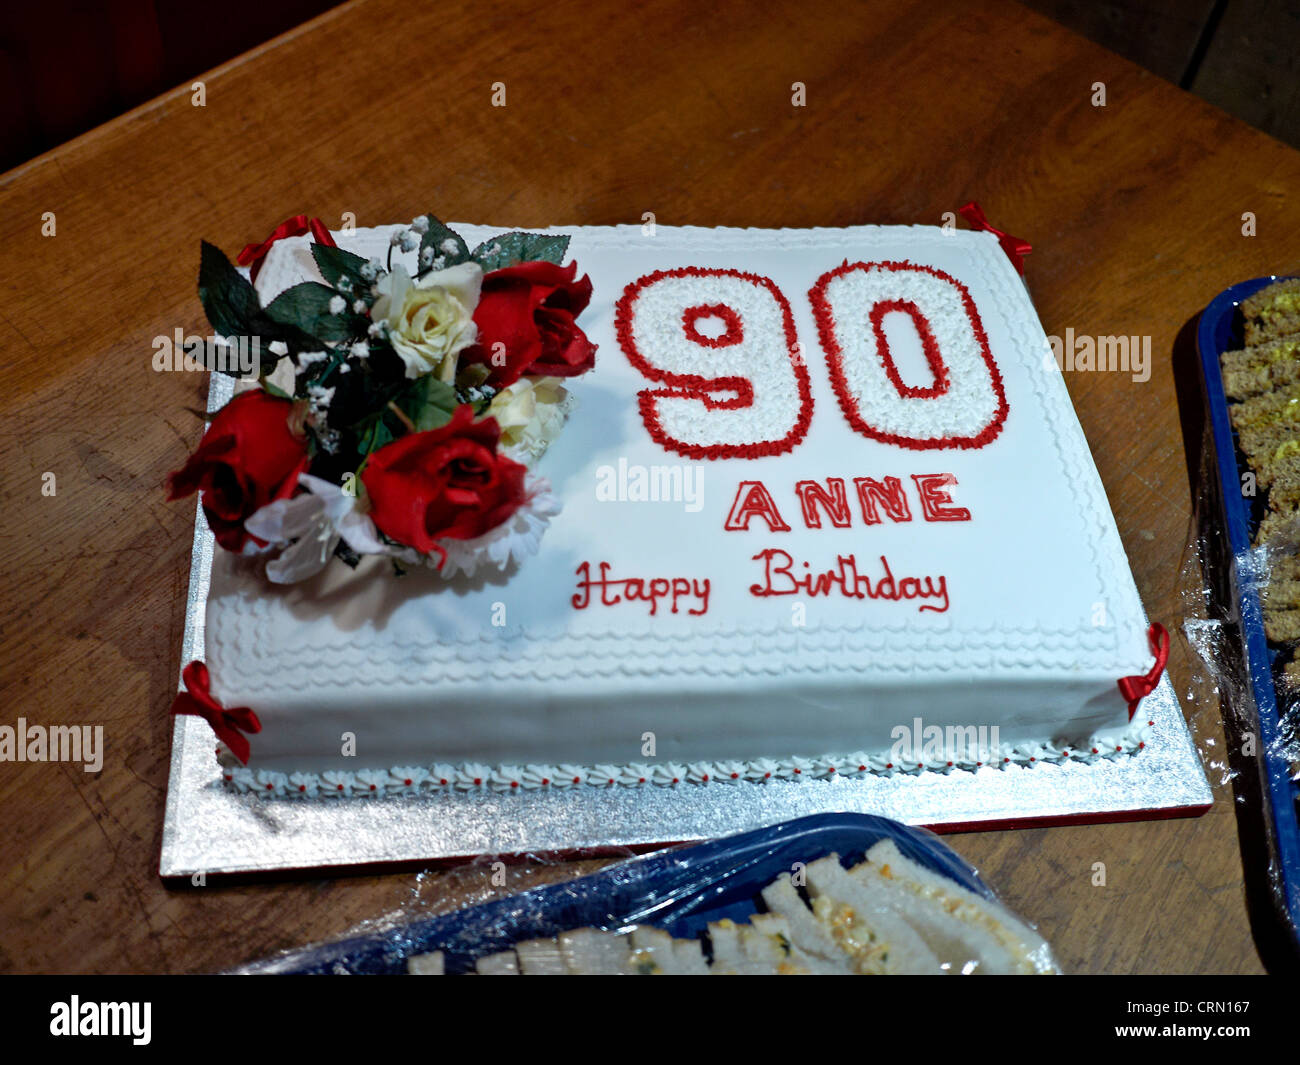 Birthday Cake For A 90 Year Old Nonagenarian Woman Suitably Decorated